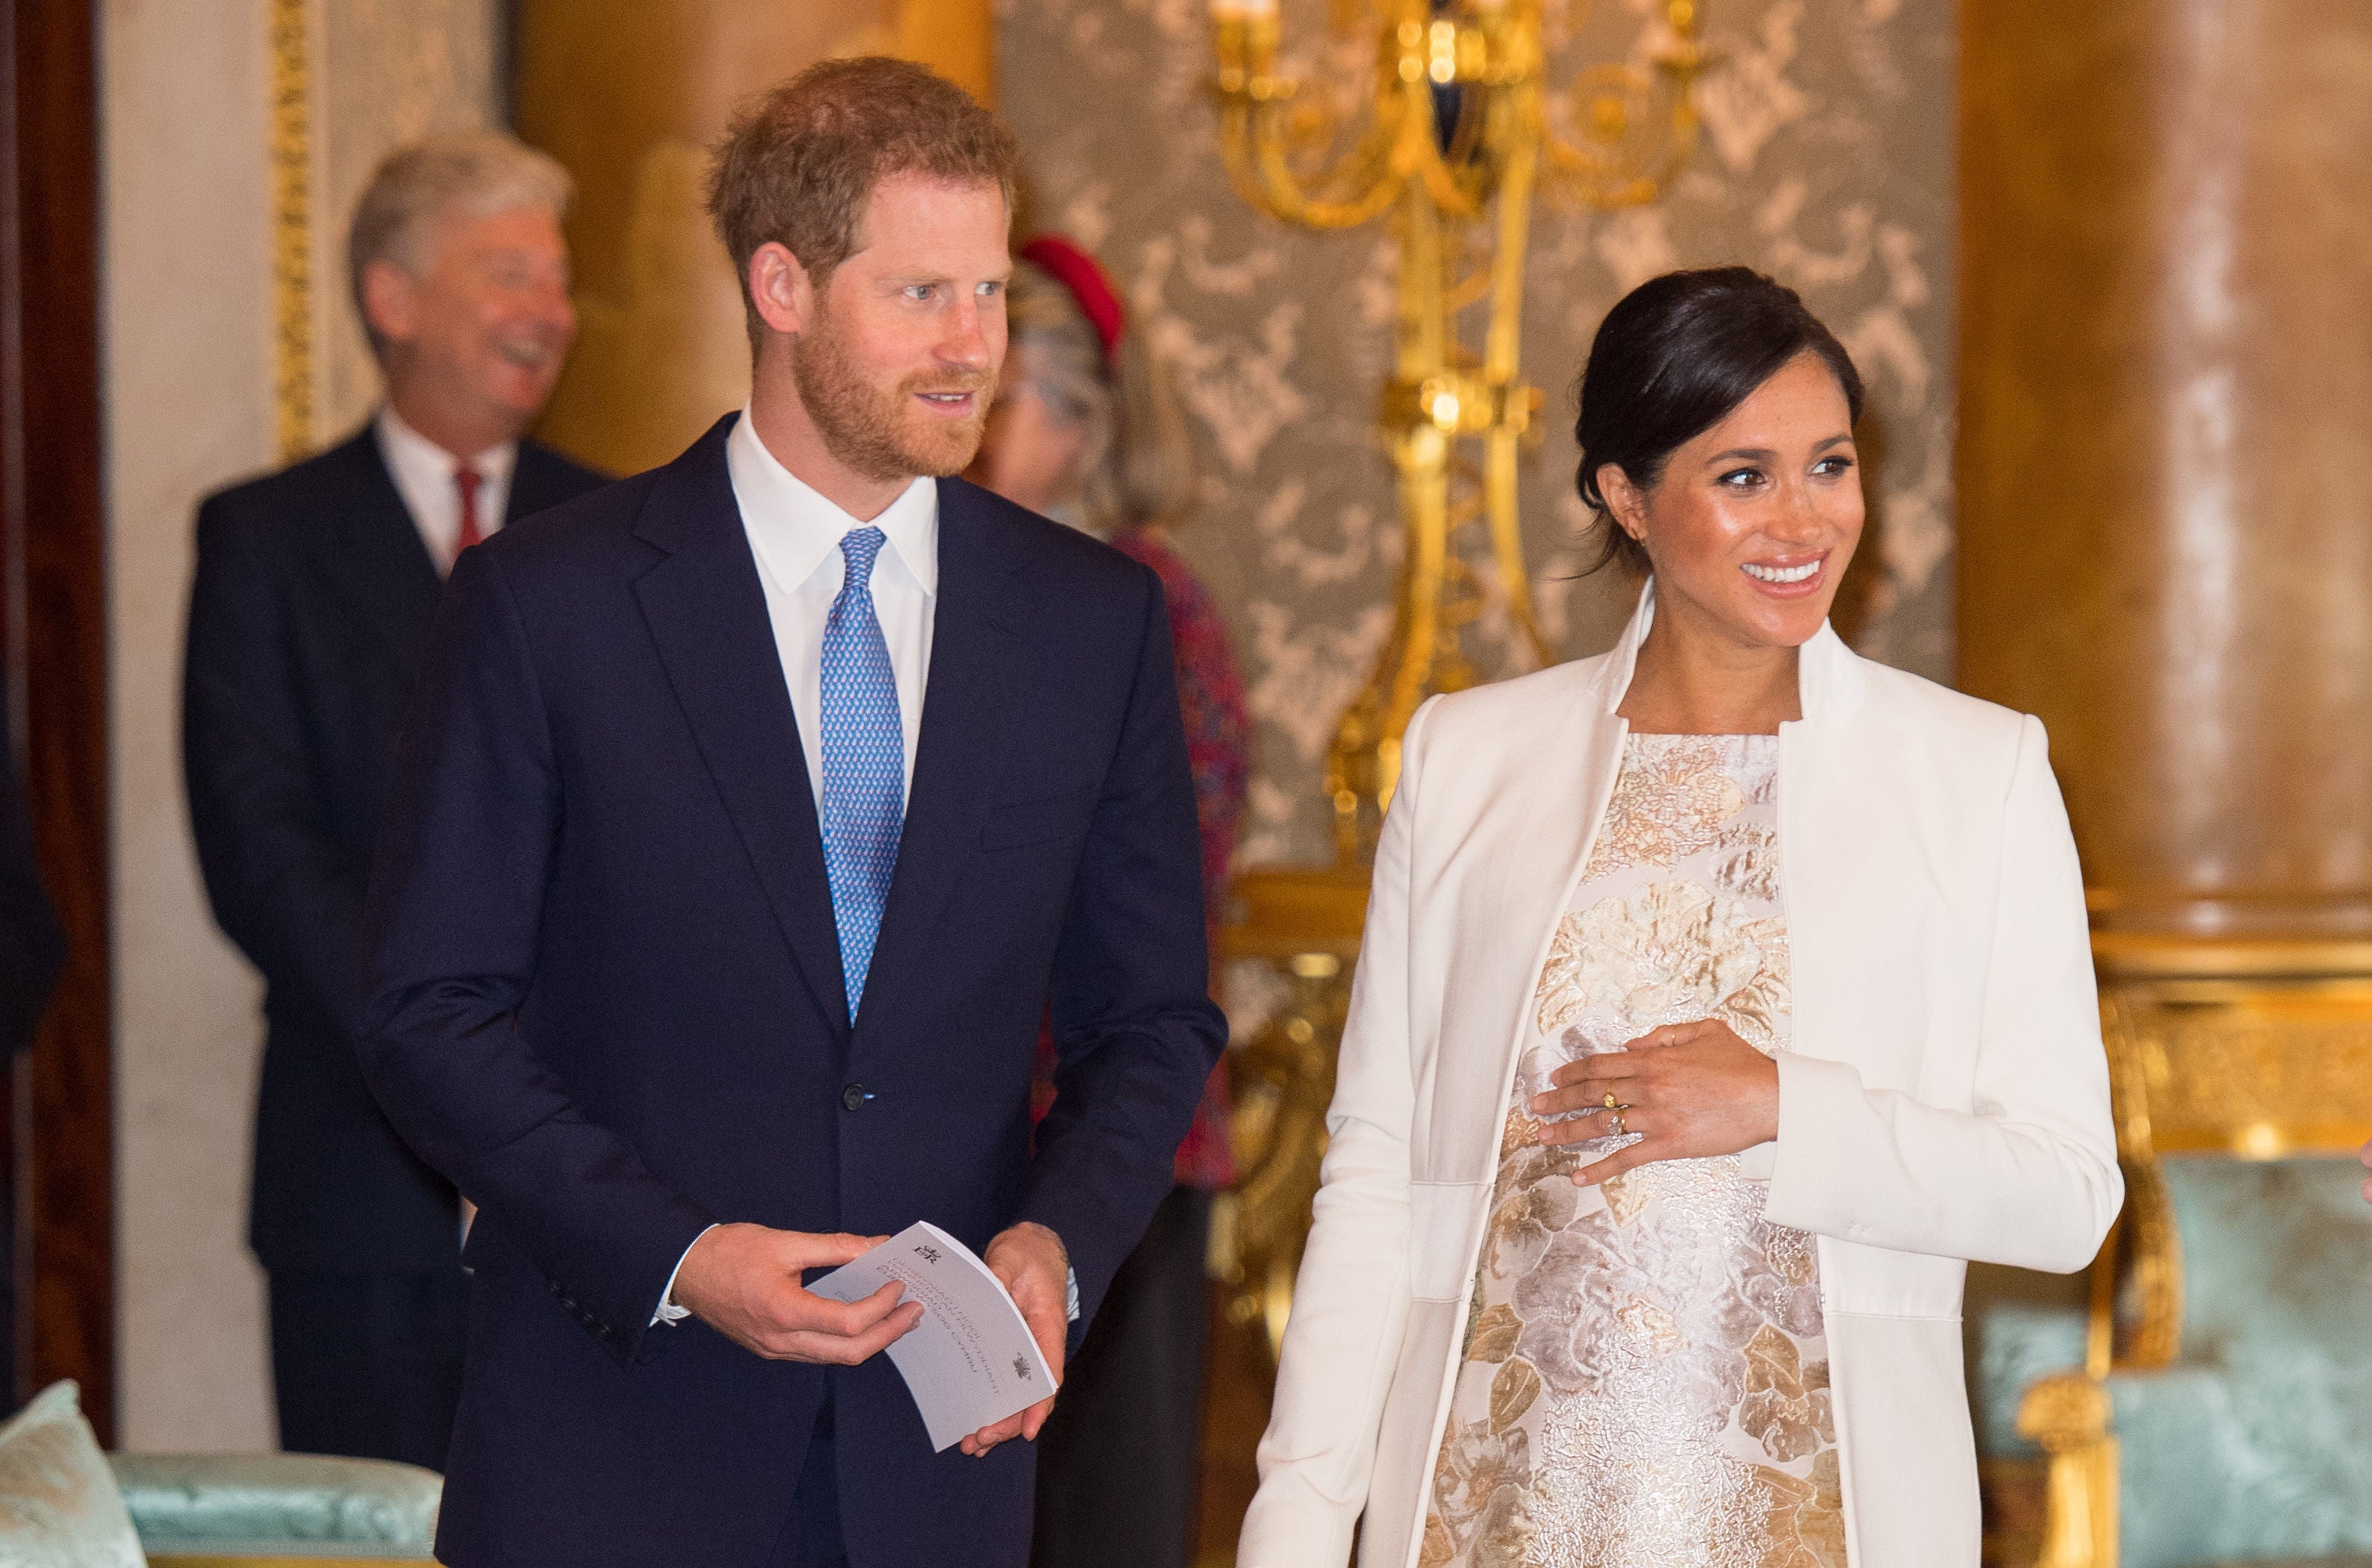 Prince Harry and Meghan Markle Due to Move to Frogmore in